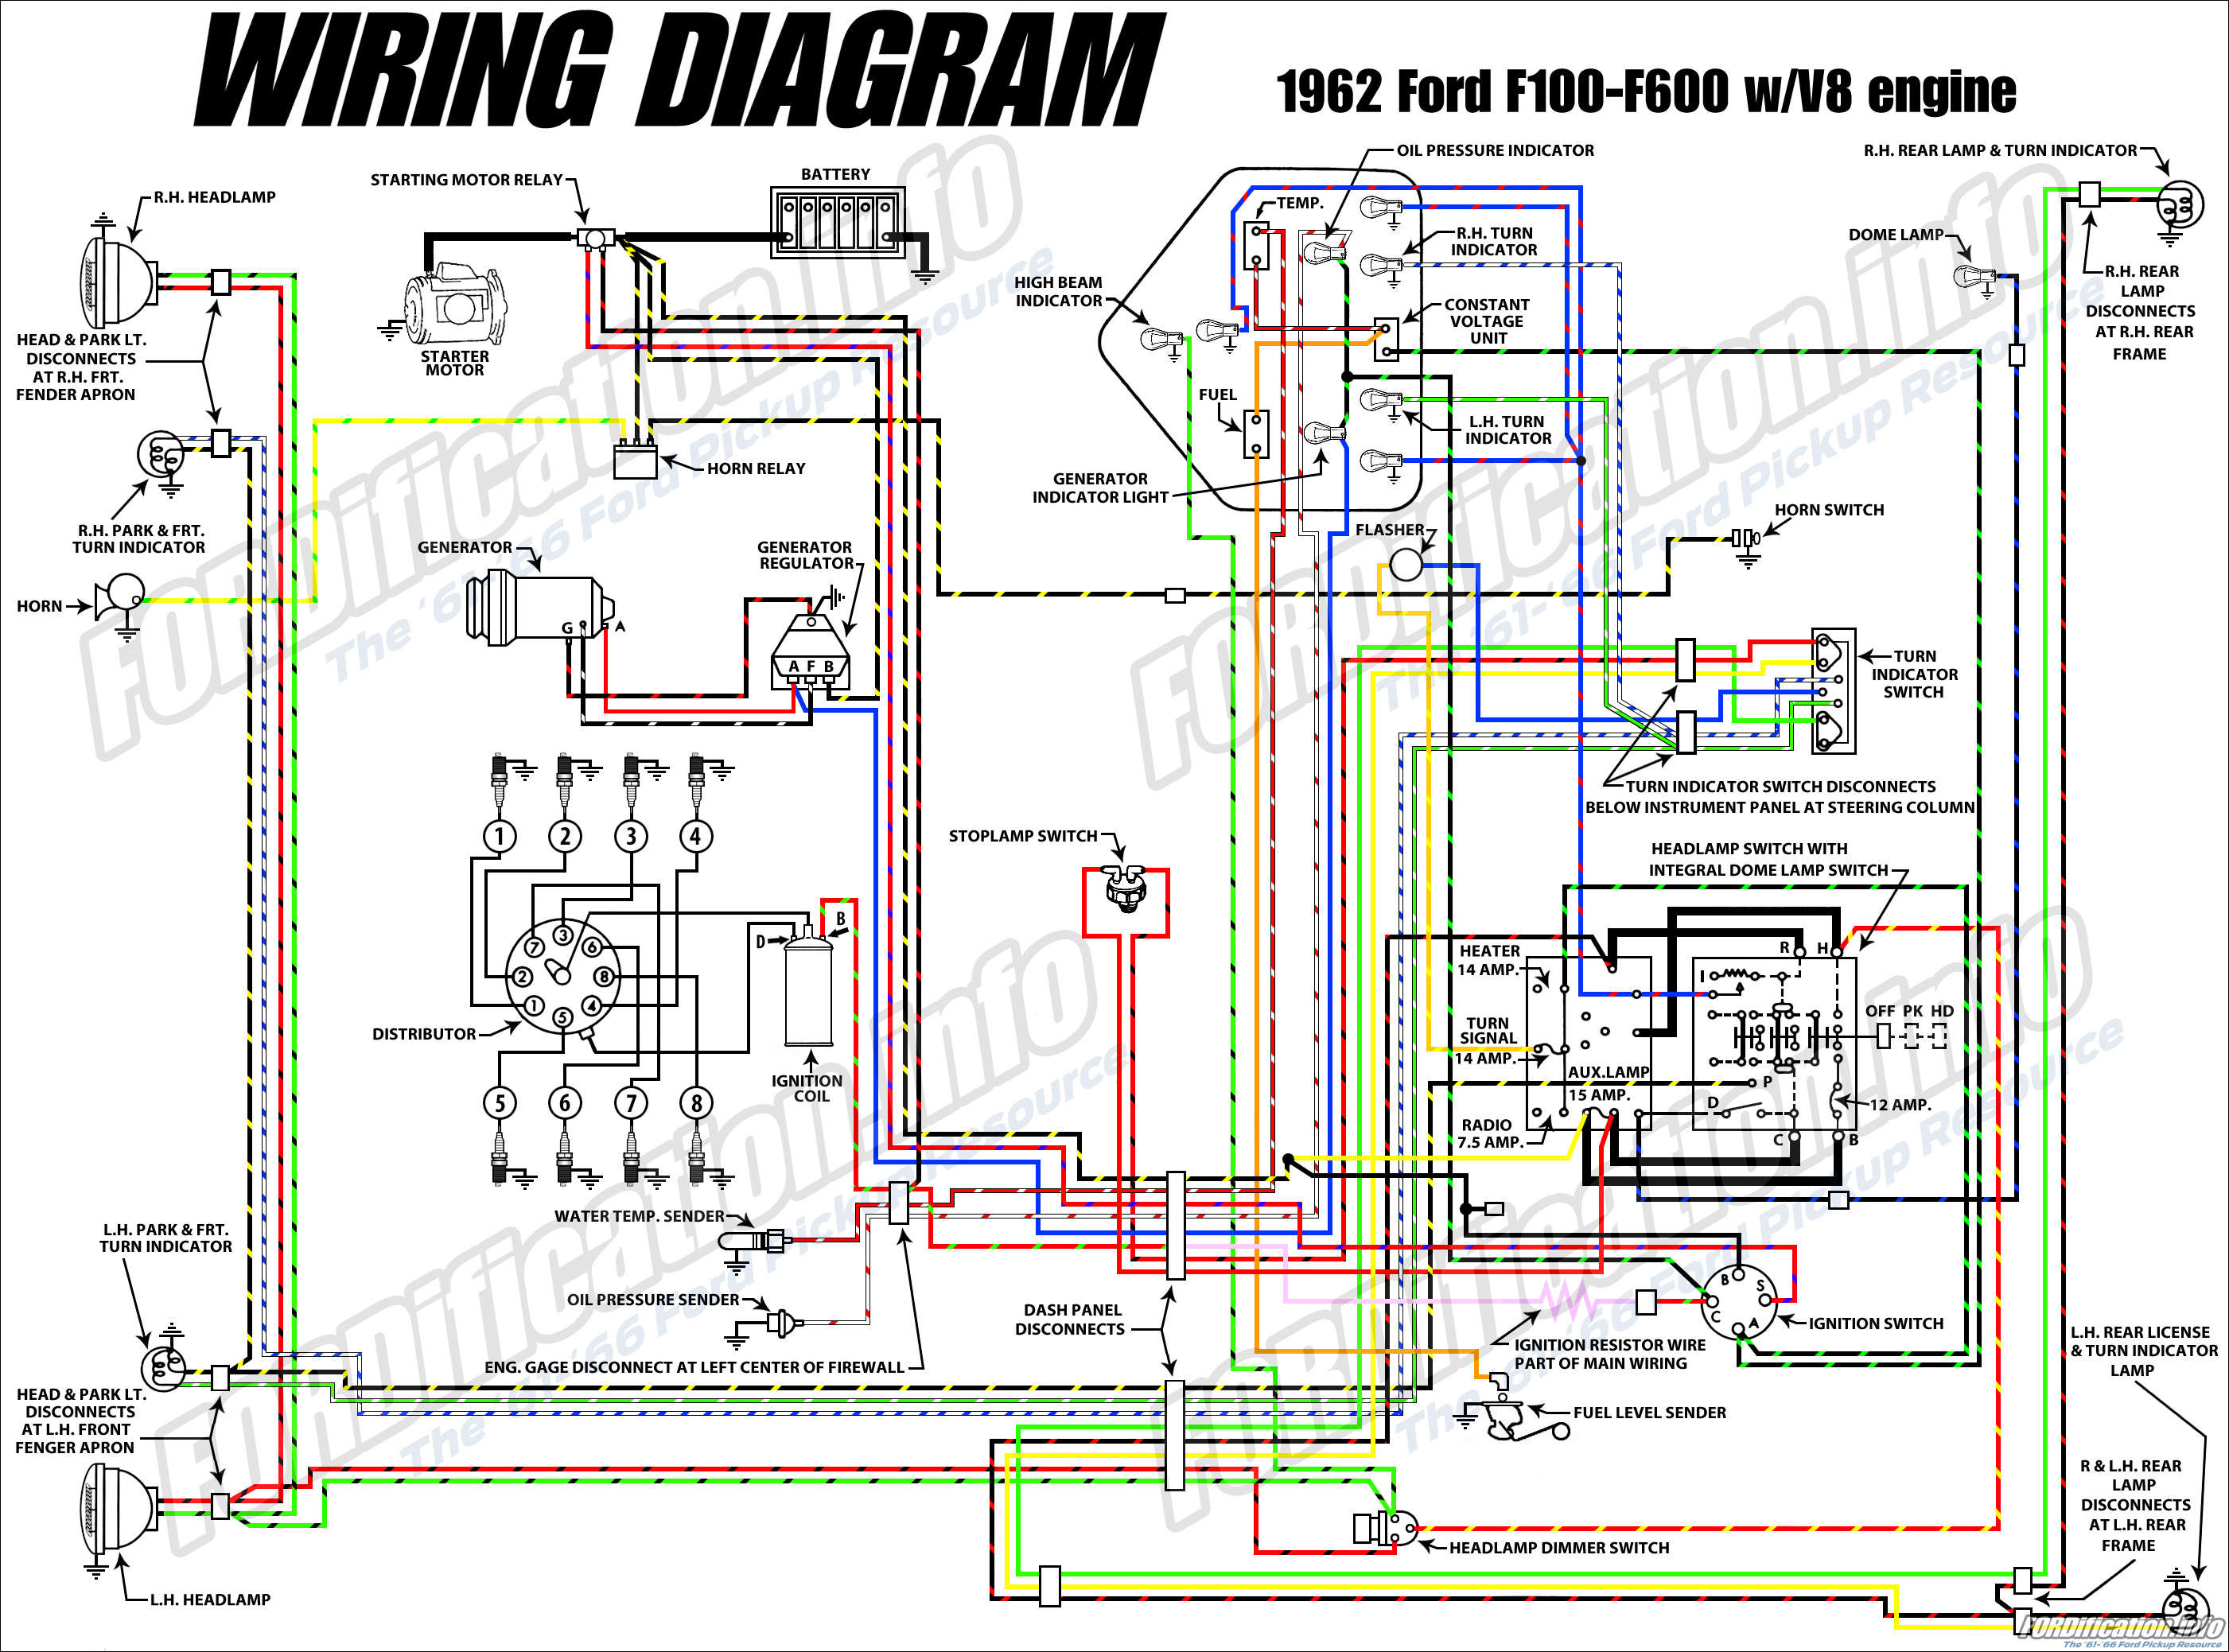 1976 Ford F150 Wiring Diagram from www.fordification.info